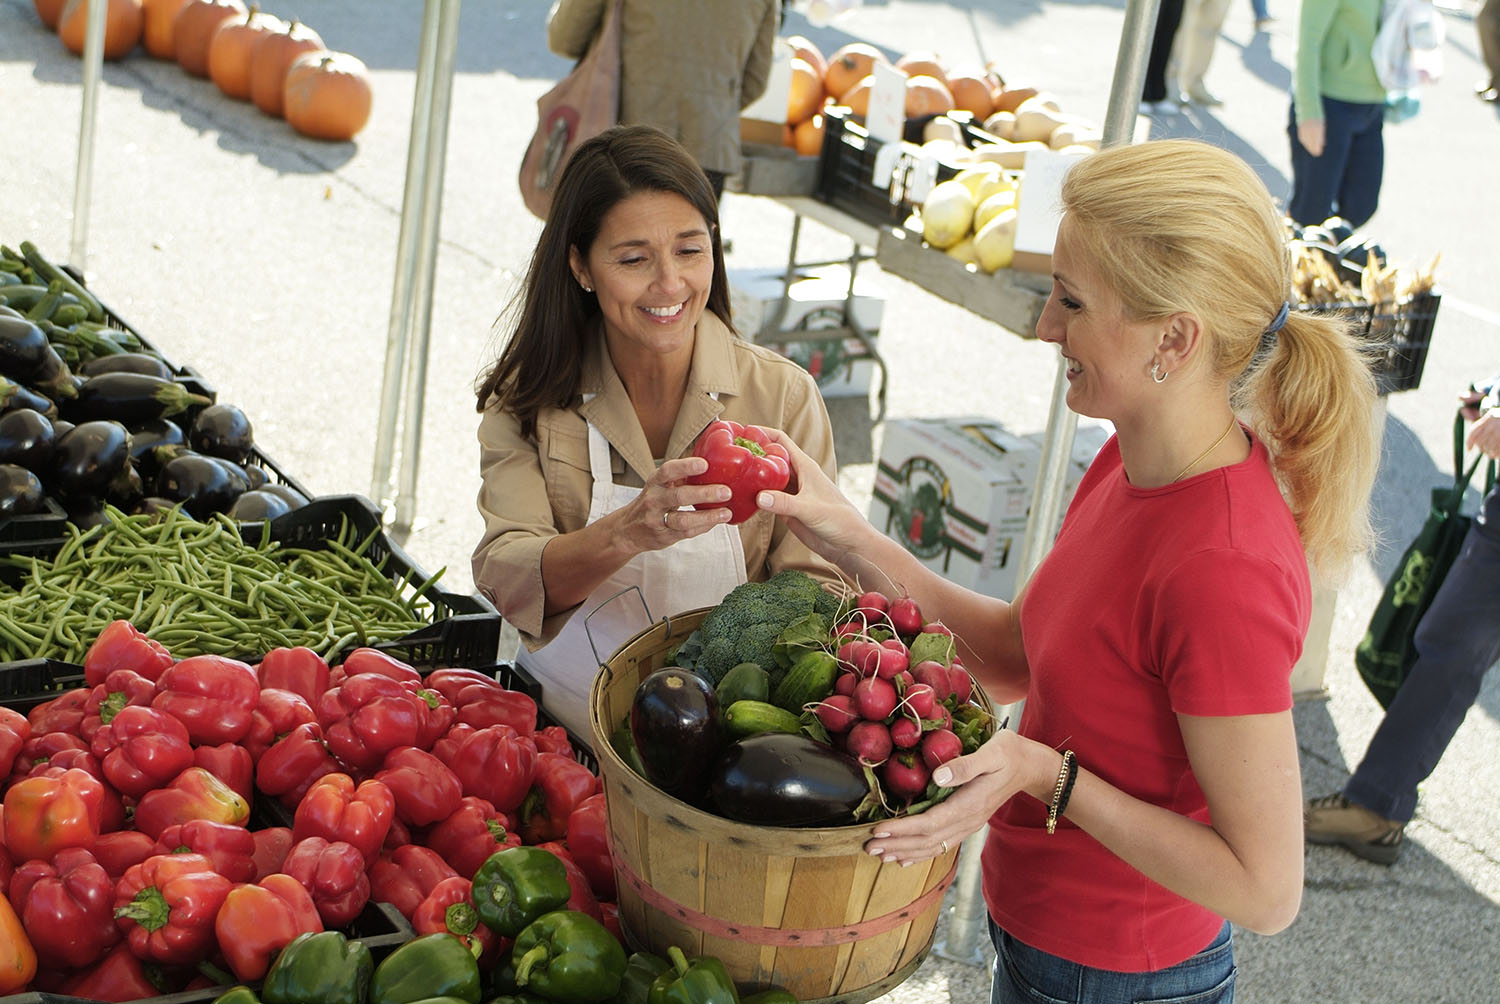 Deerfield's Farmers Market